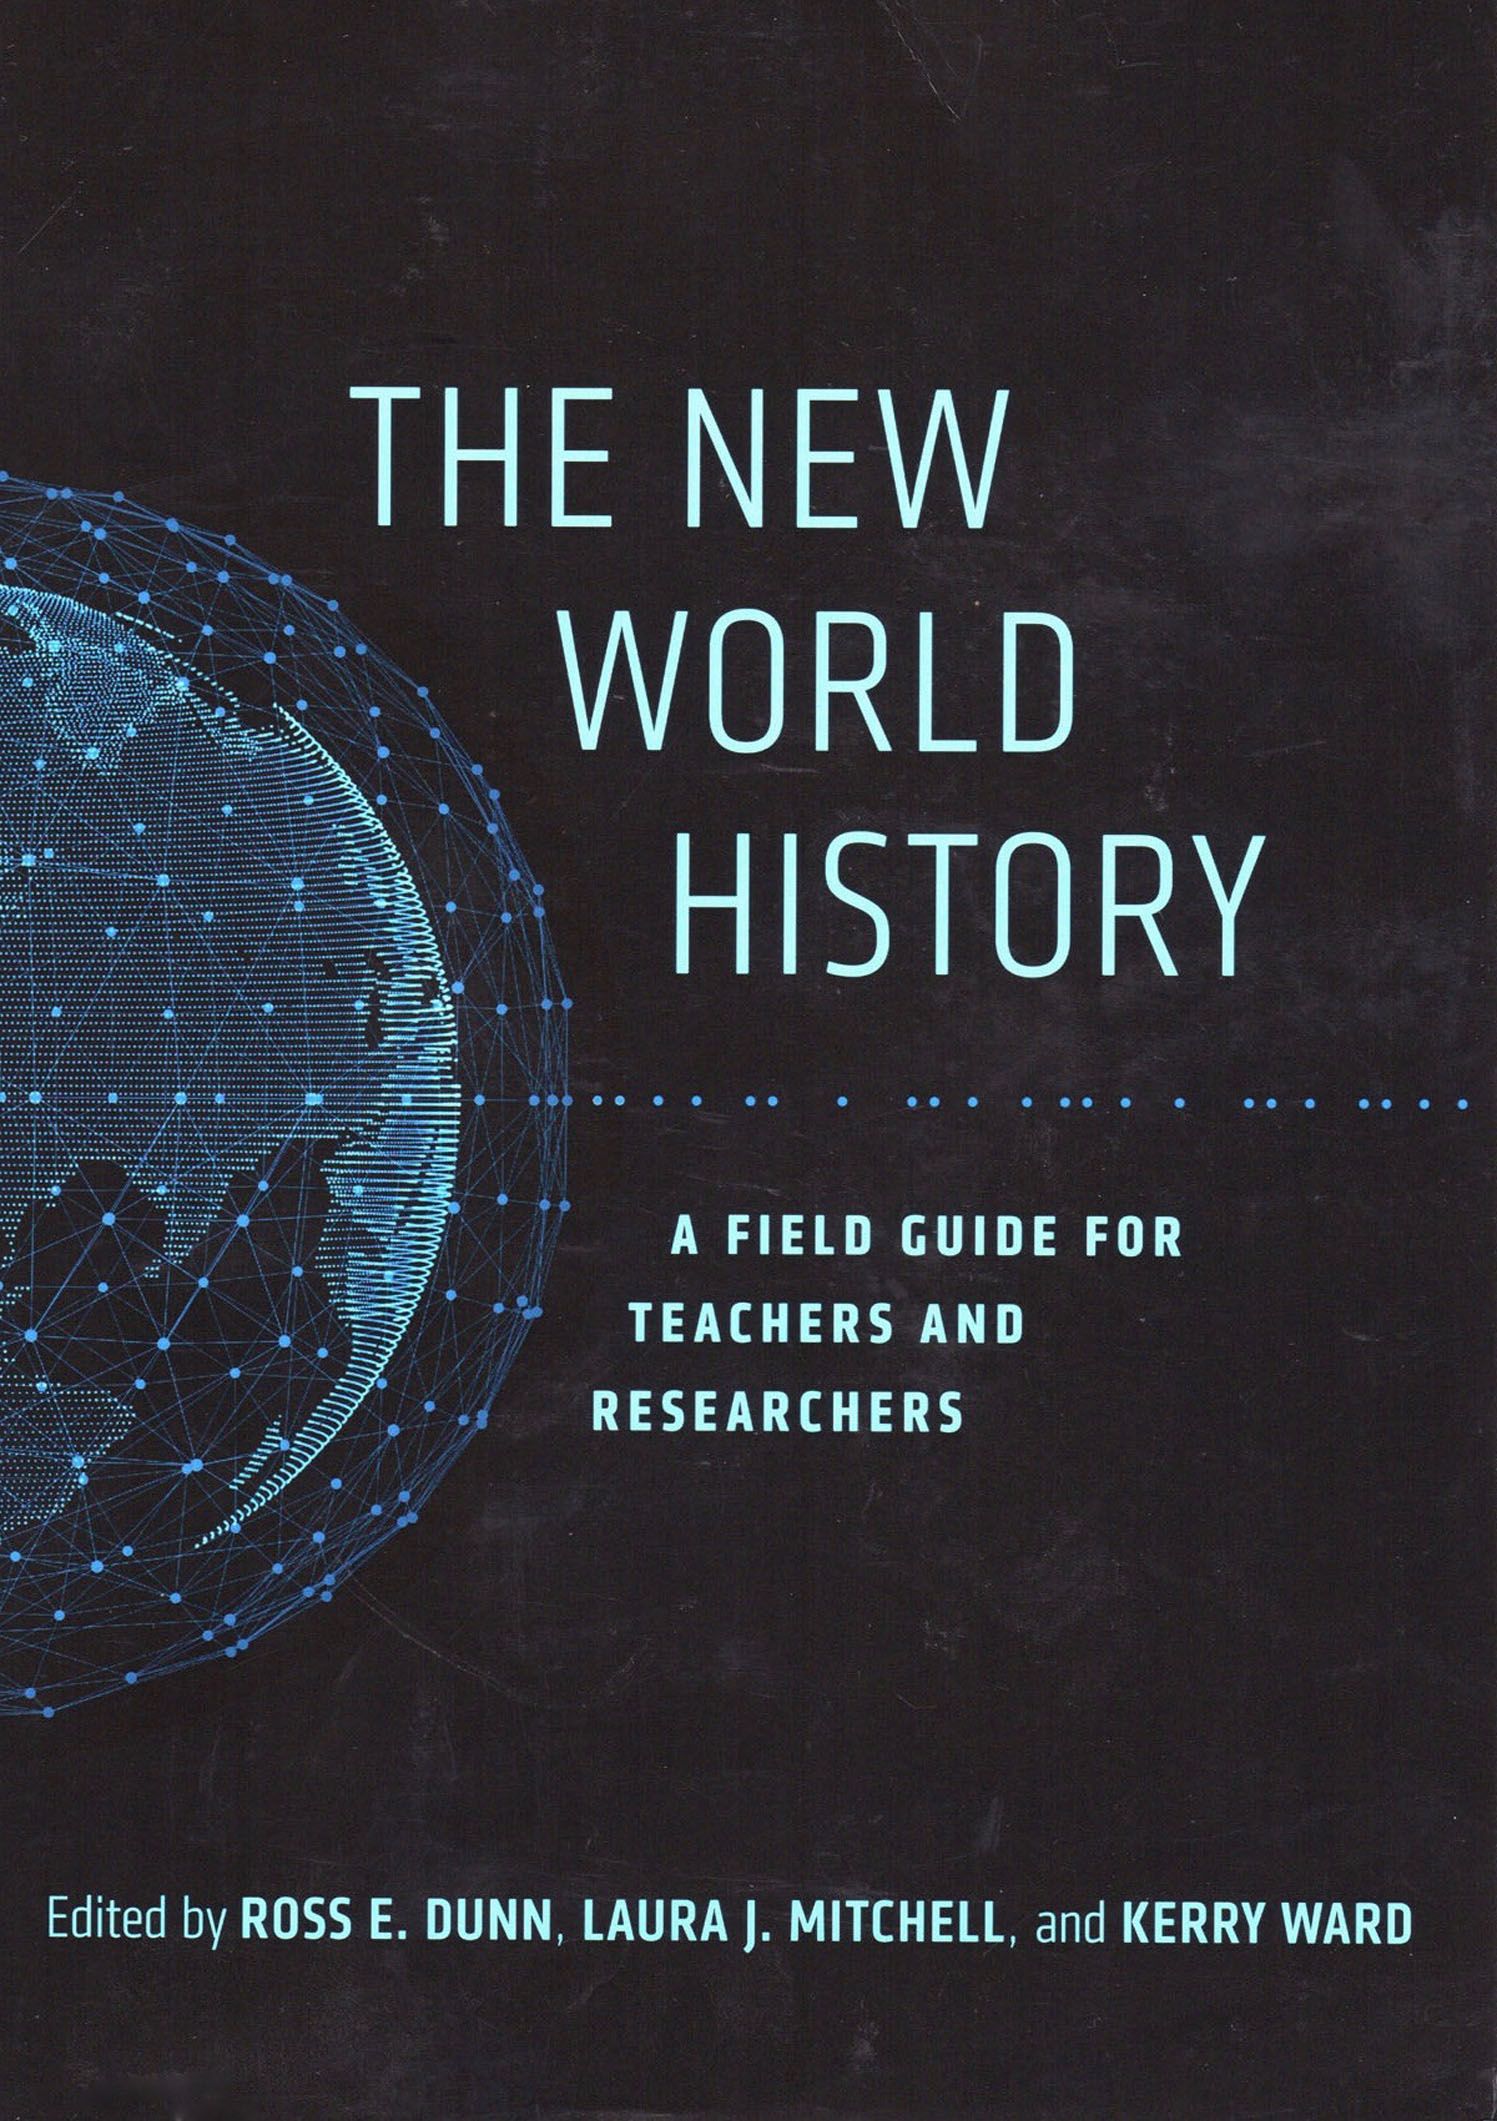 Ross E. Dunn, Laura J. Mitchell, and Kerry Ward  The New World History: A Field Guide for Teachers and Researchers  (Berkeley: University of California Press, 2015)